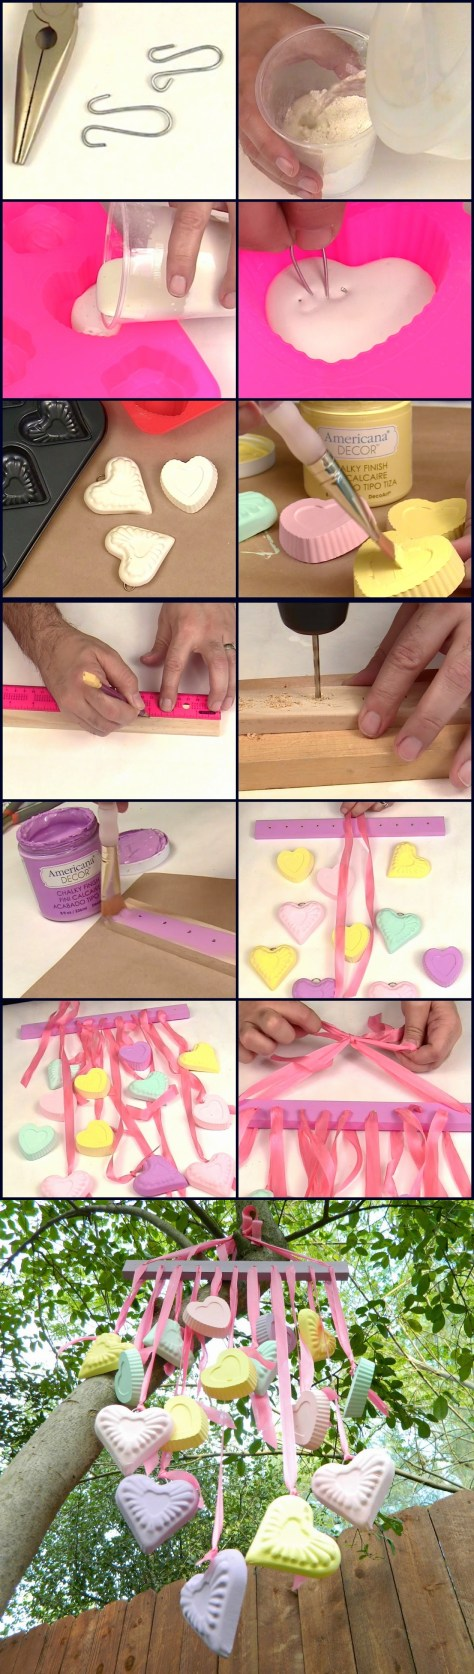 Candy Hearts Wind Chime Tutorial